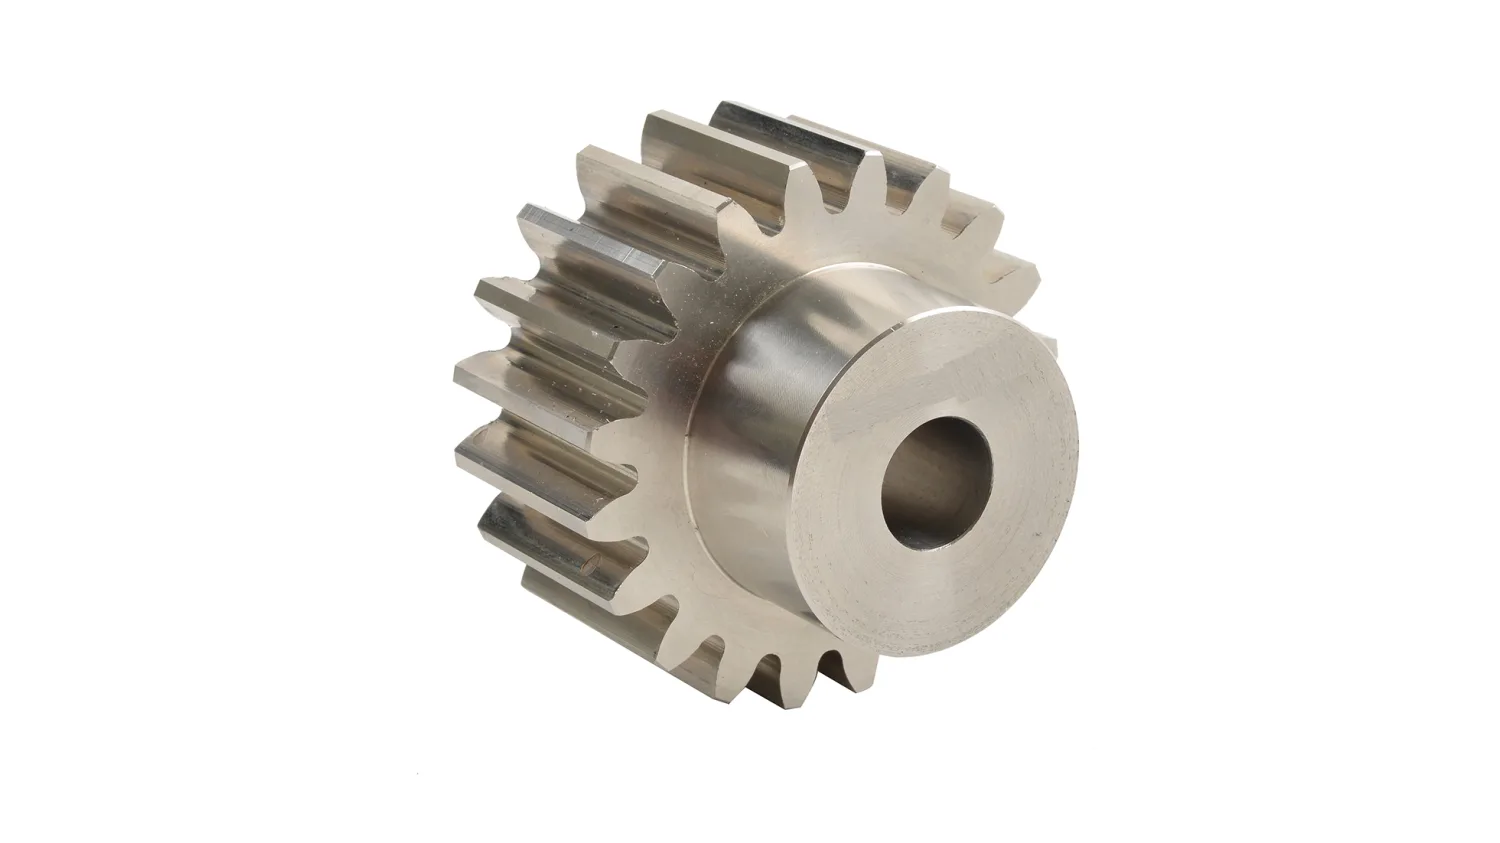 1-5-Mod-x-26-Tooth-Metric-Spur-Gear-in-Steel